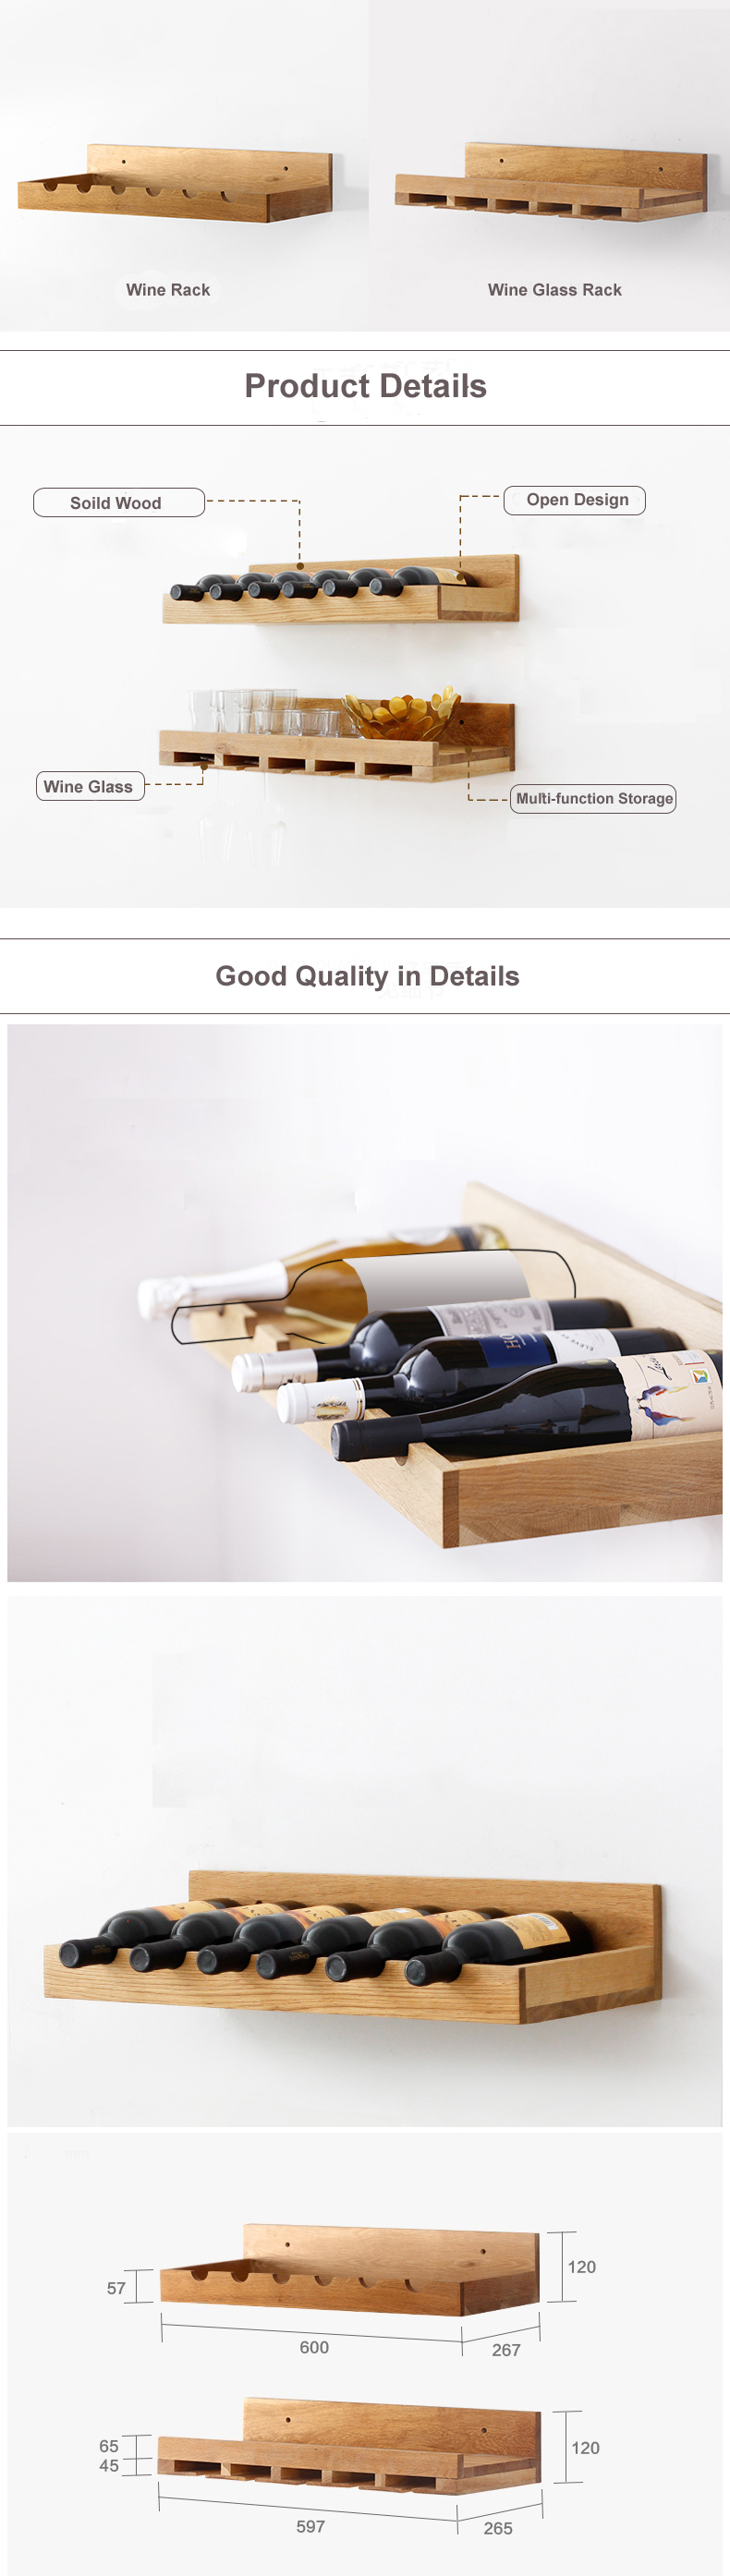 Wine Rack Display Shelf